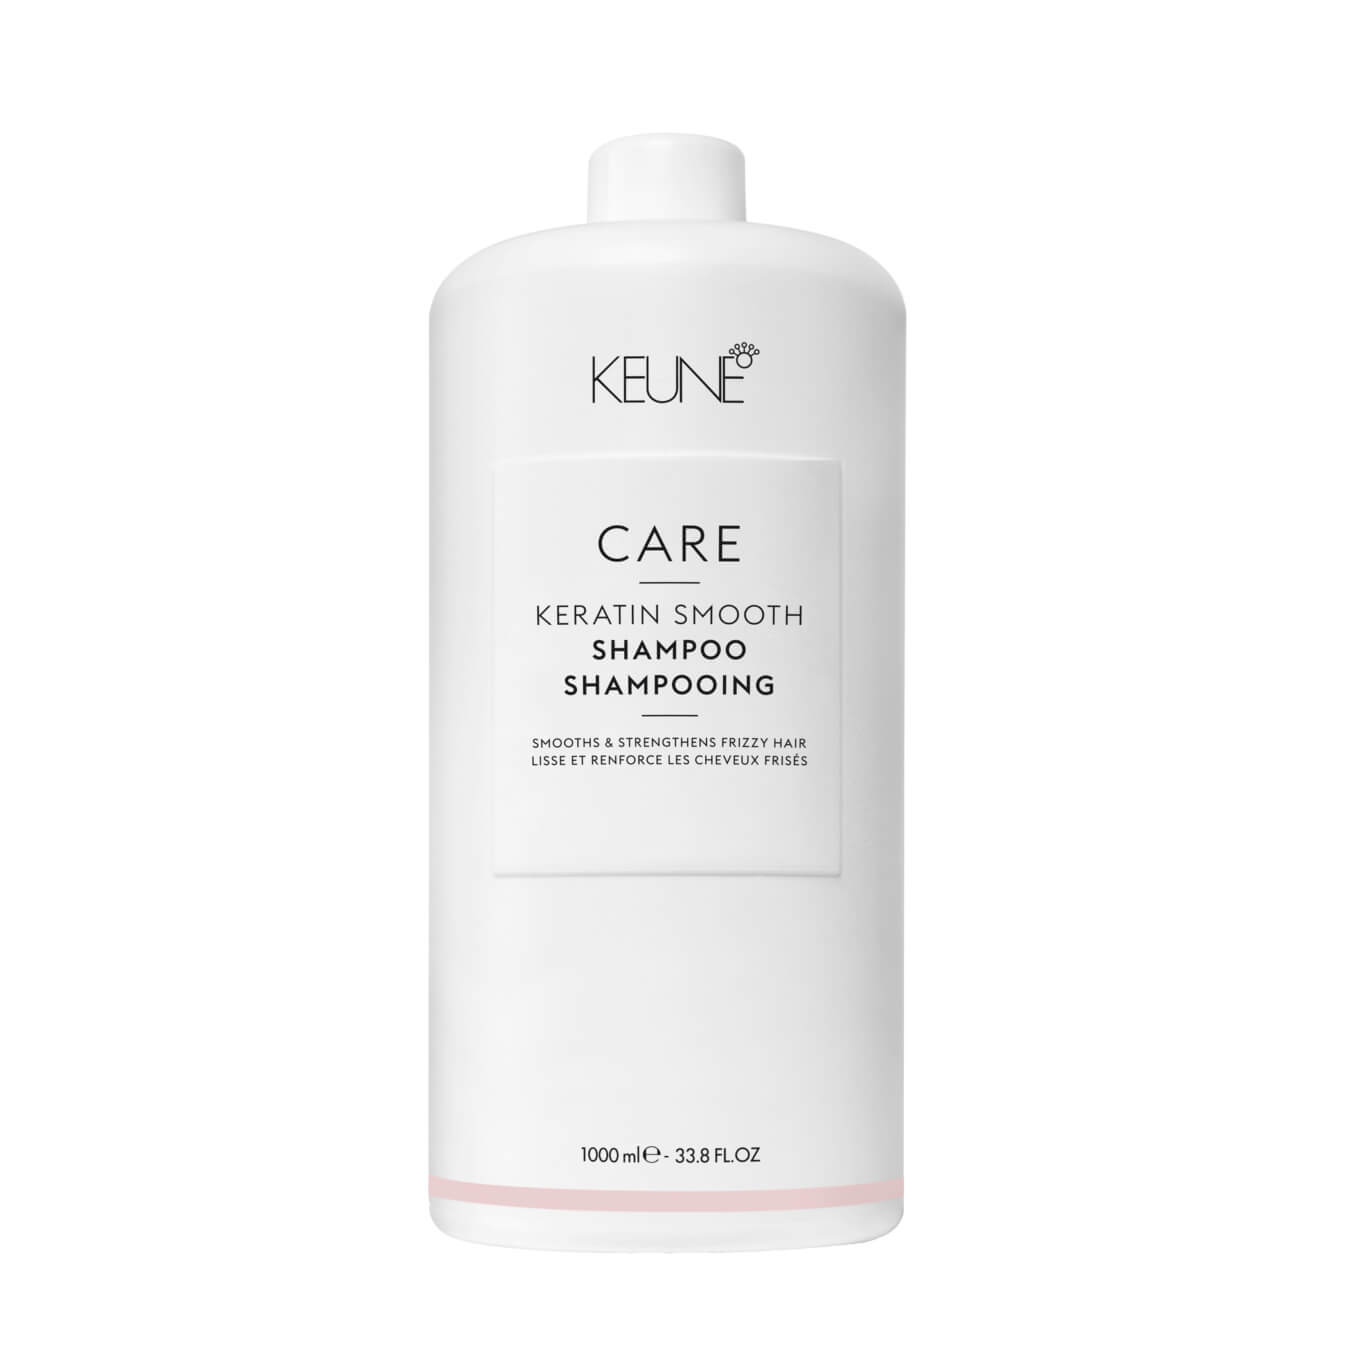 Koop Keune Care Keratin Smooth Shampoo 1000ml